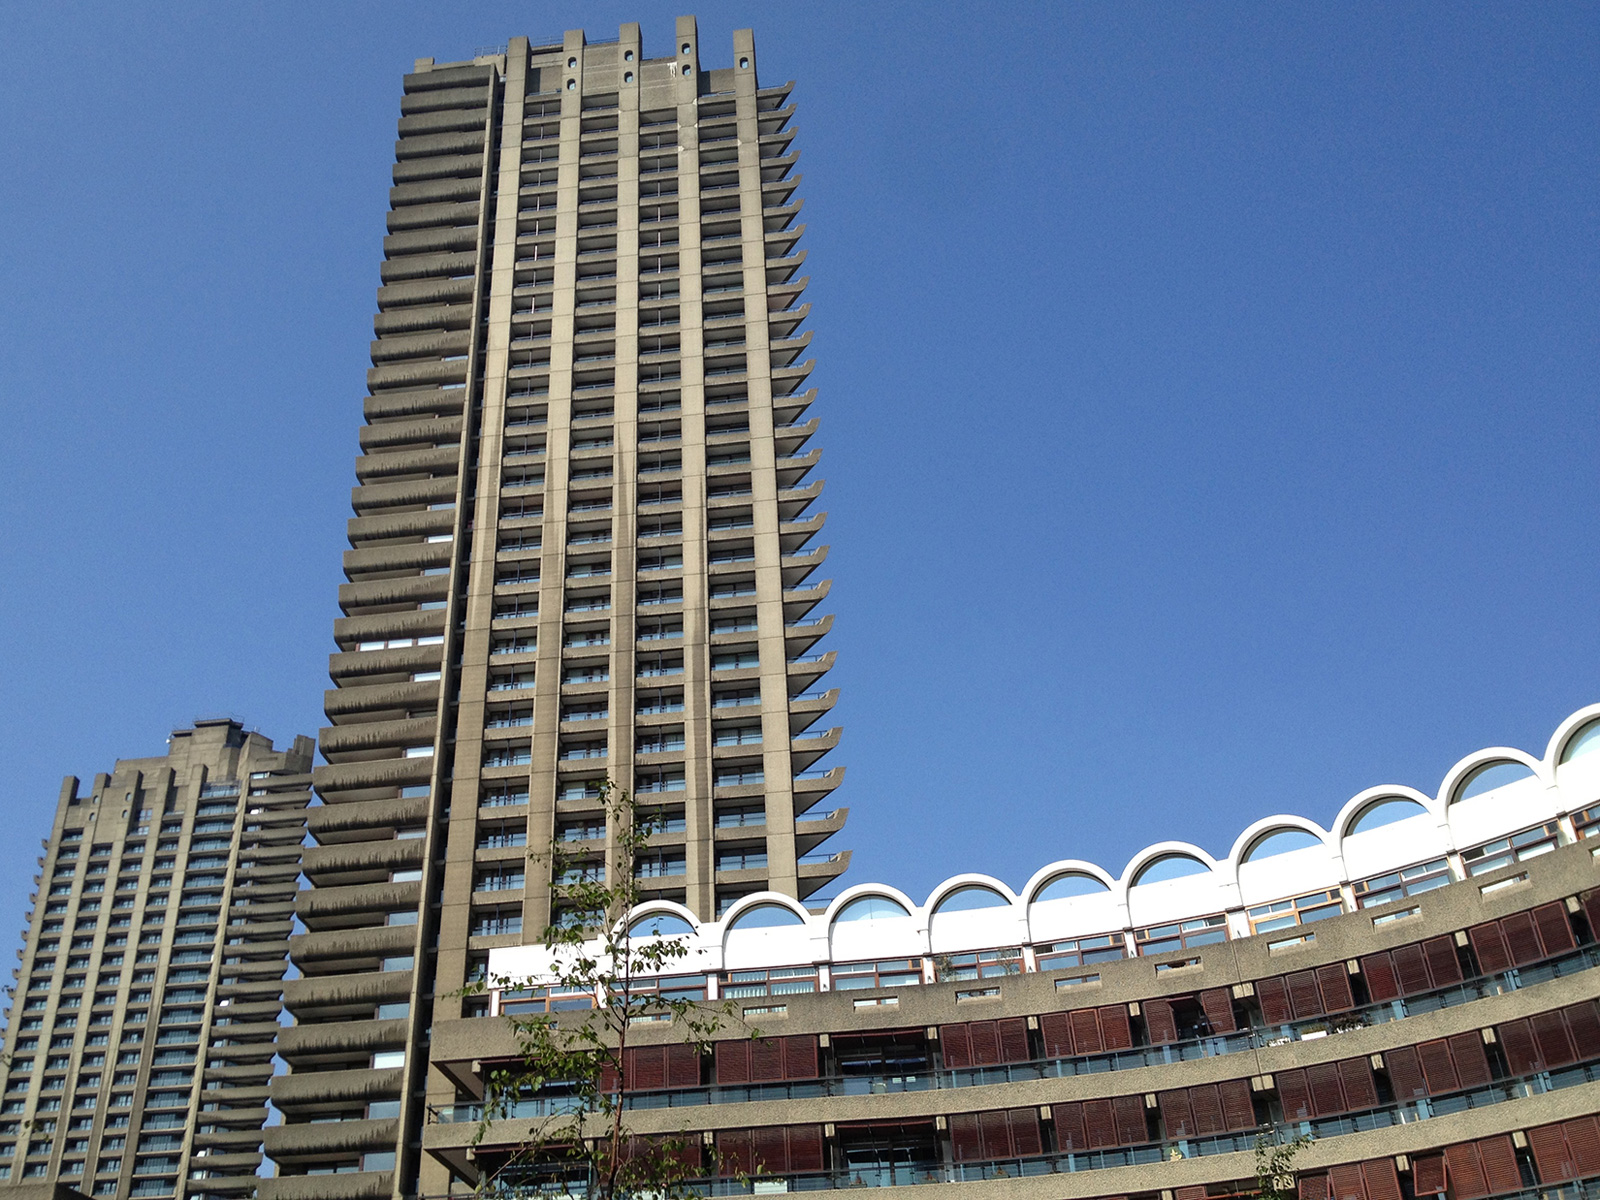 tower-block-and-terrace-block,-Barbican-Estate,-This-Brutal-House